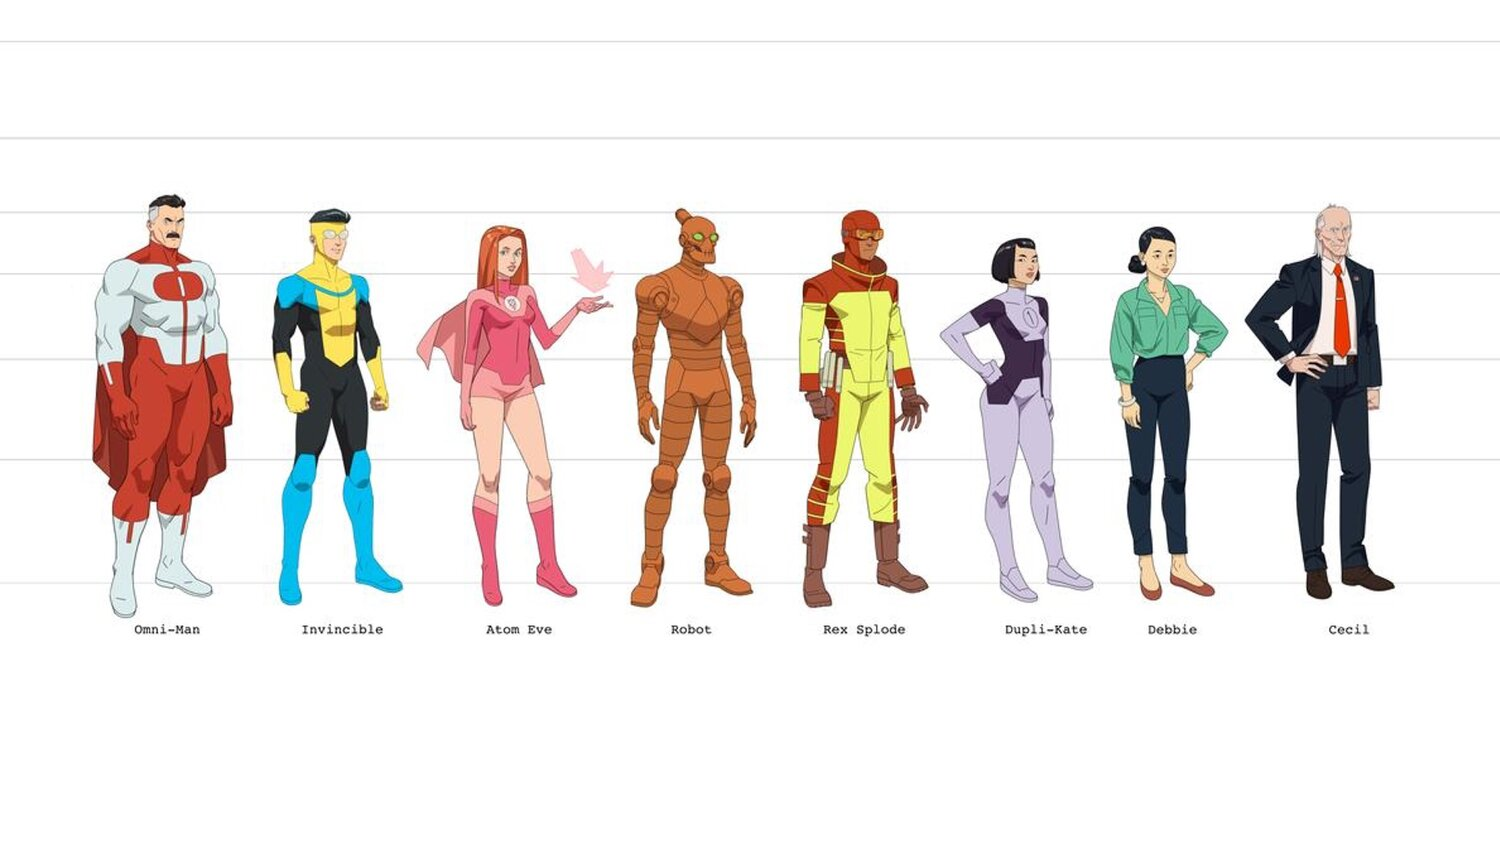 Character Designs Revealed For Amazon's Animated Adaptation of Robert Kirkman's INVINCIBLE